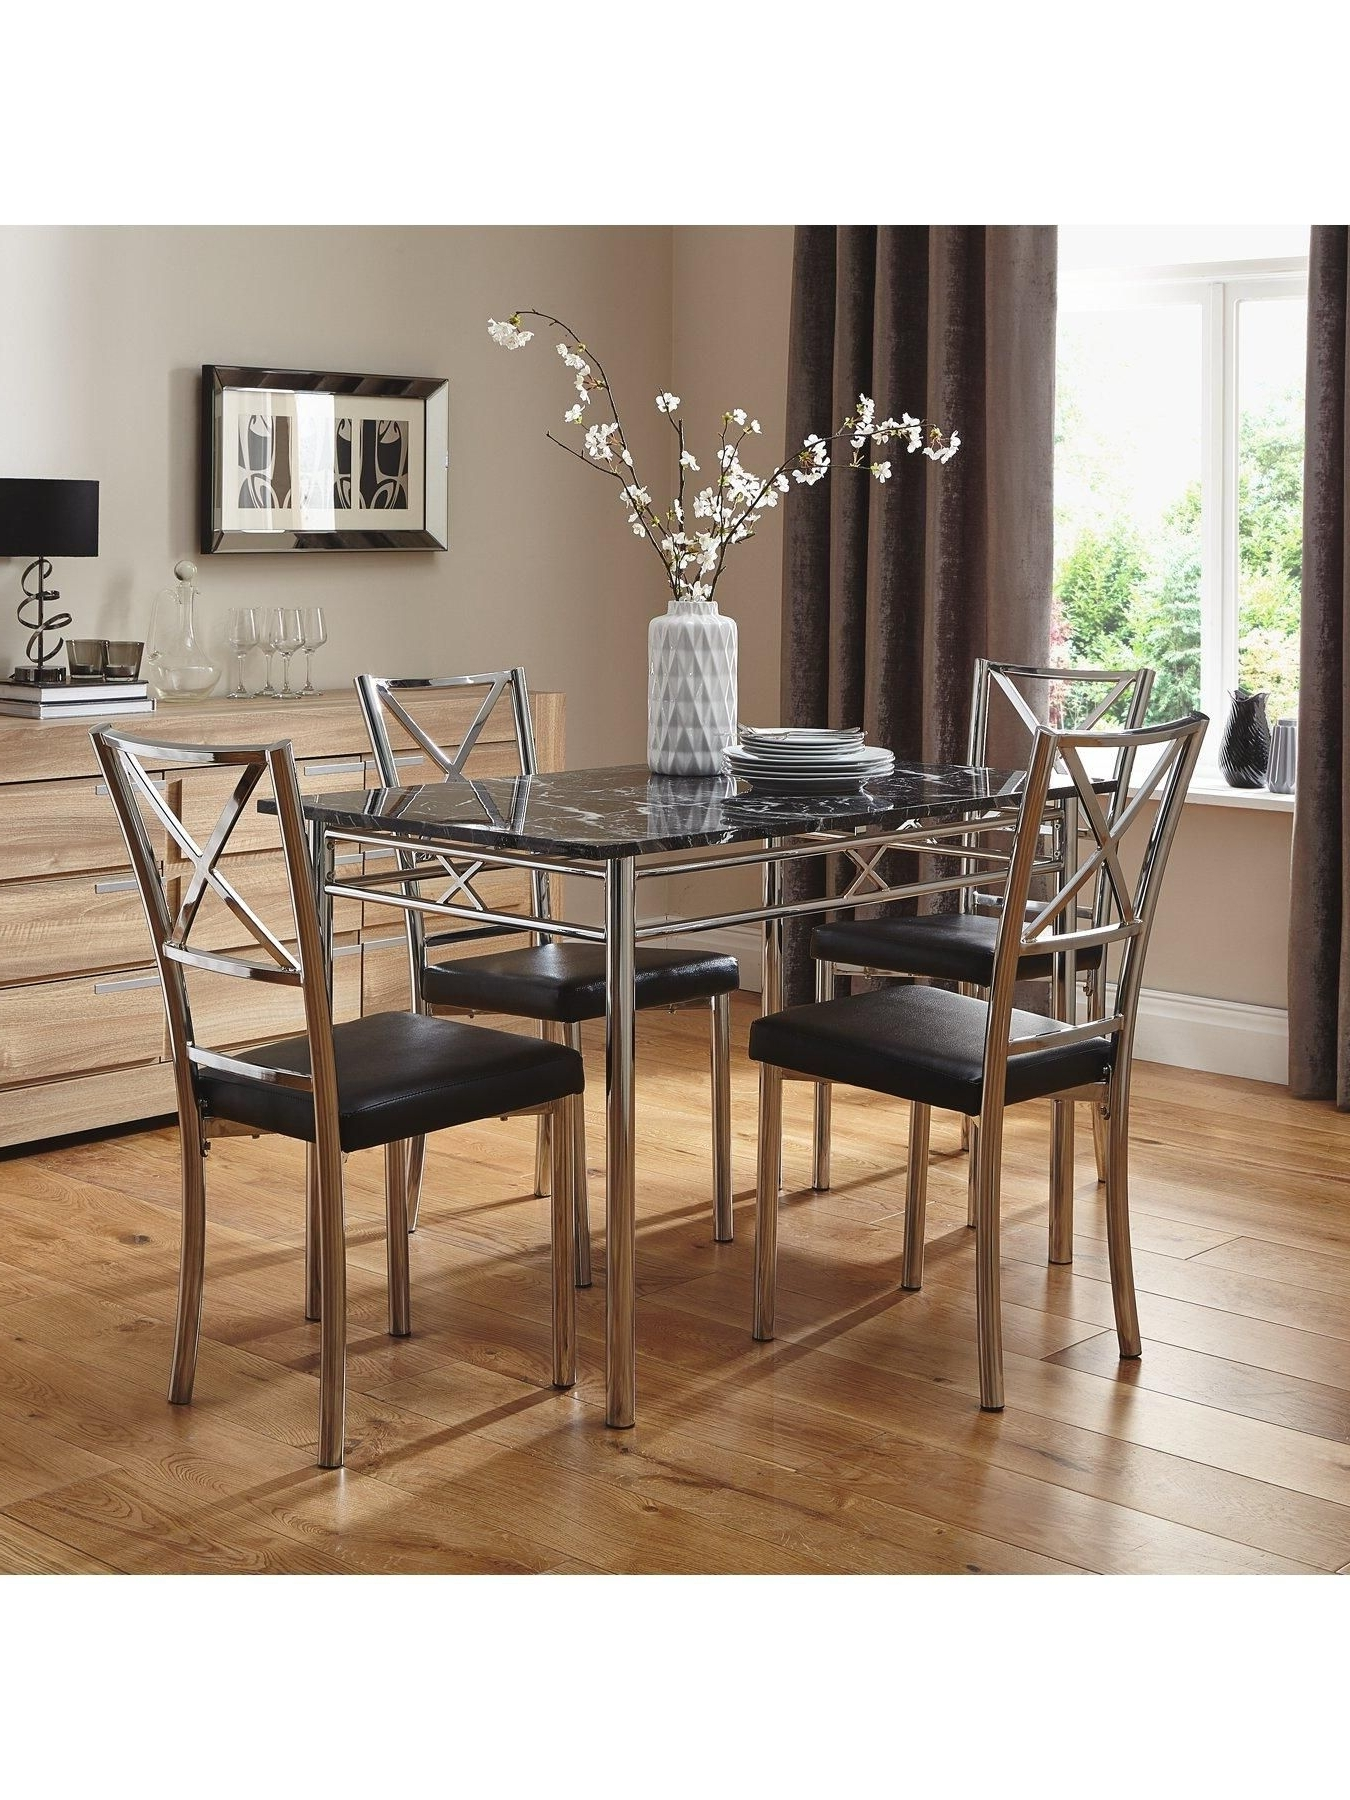 120 Cm Marble Effect Dining Table + 4 Chairs (Gallery 5 of 25)